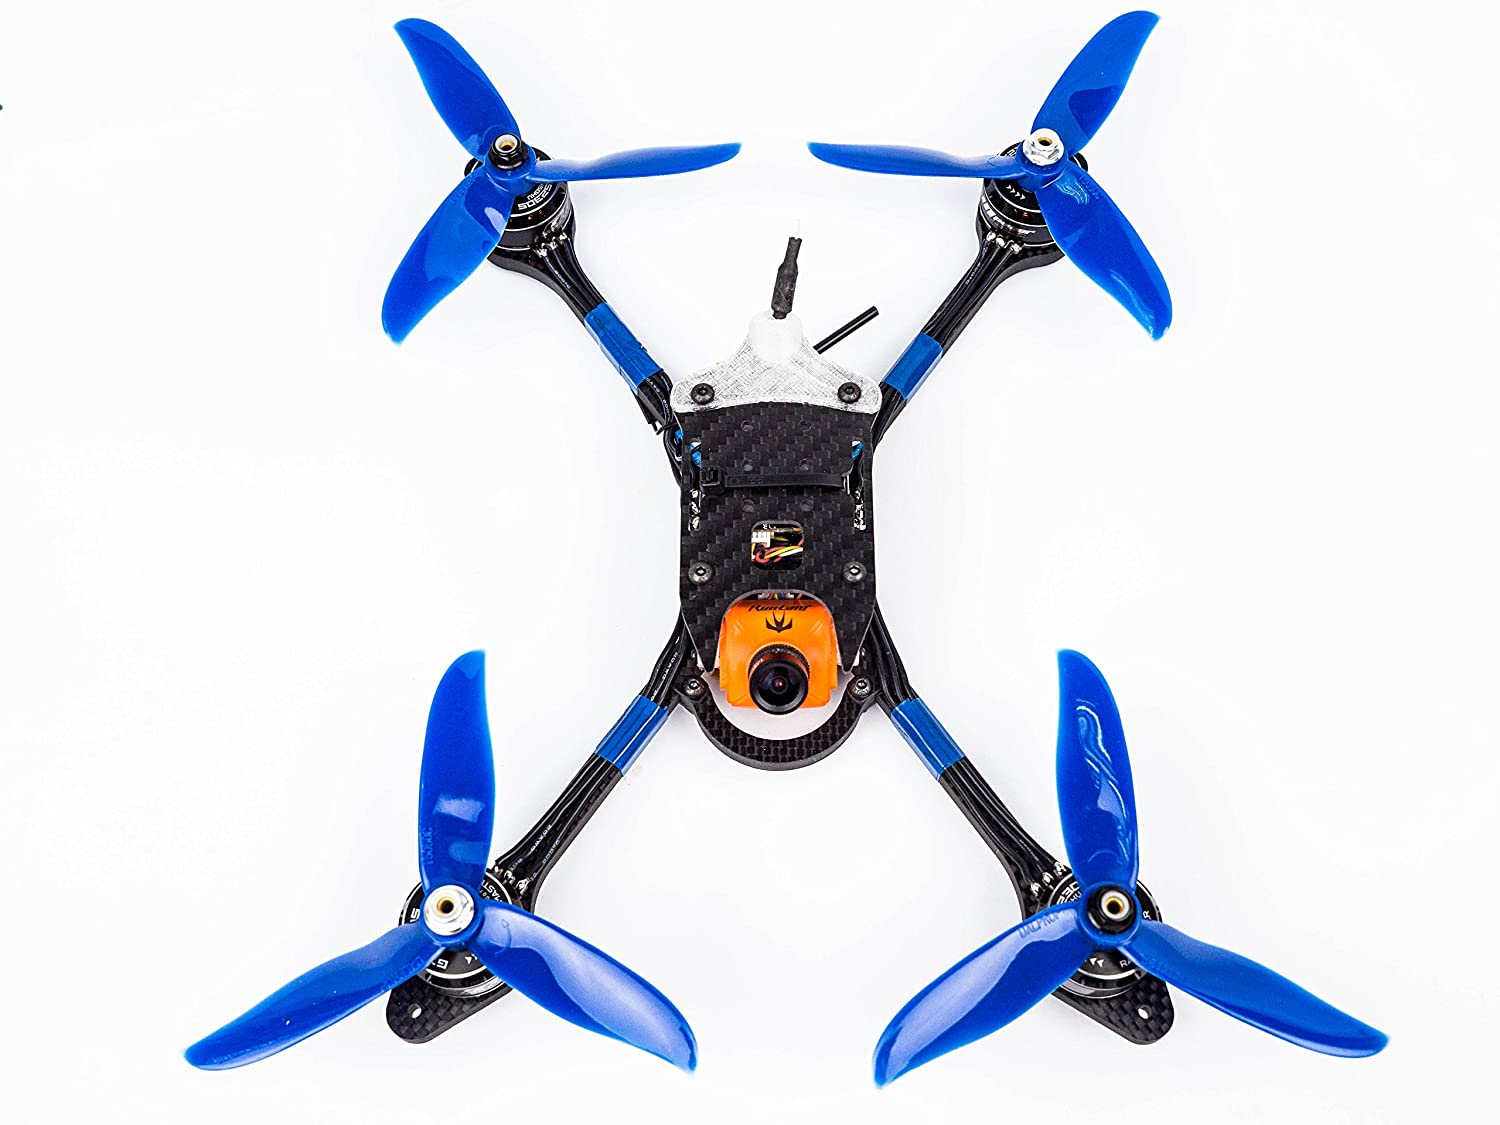 3dpower 240-maka-usx Stretch X FPV Racing Quadcopter Rahmen